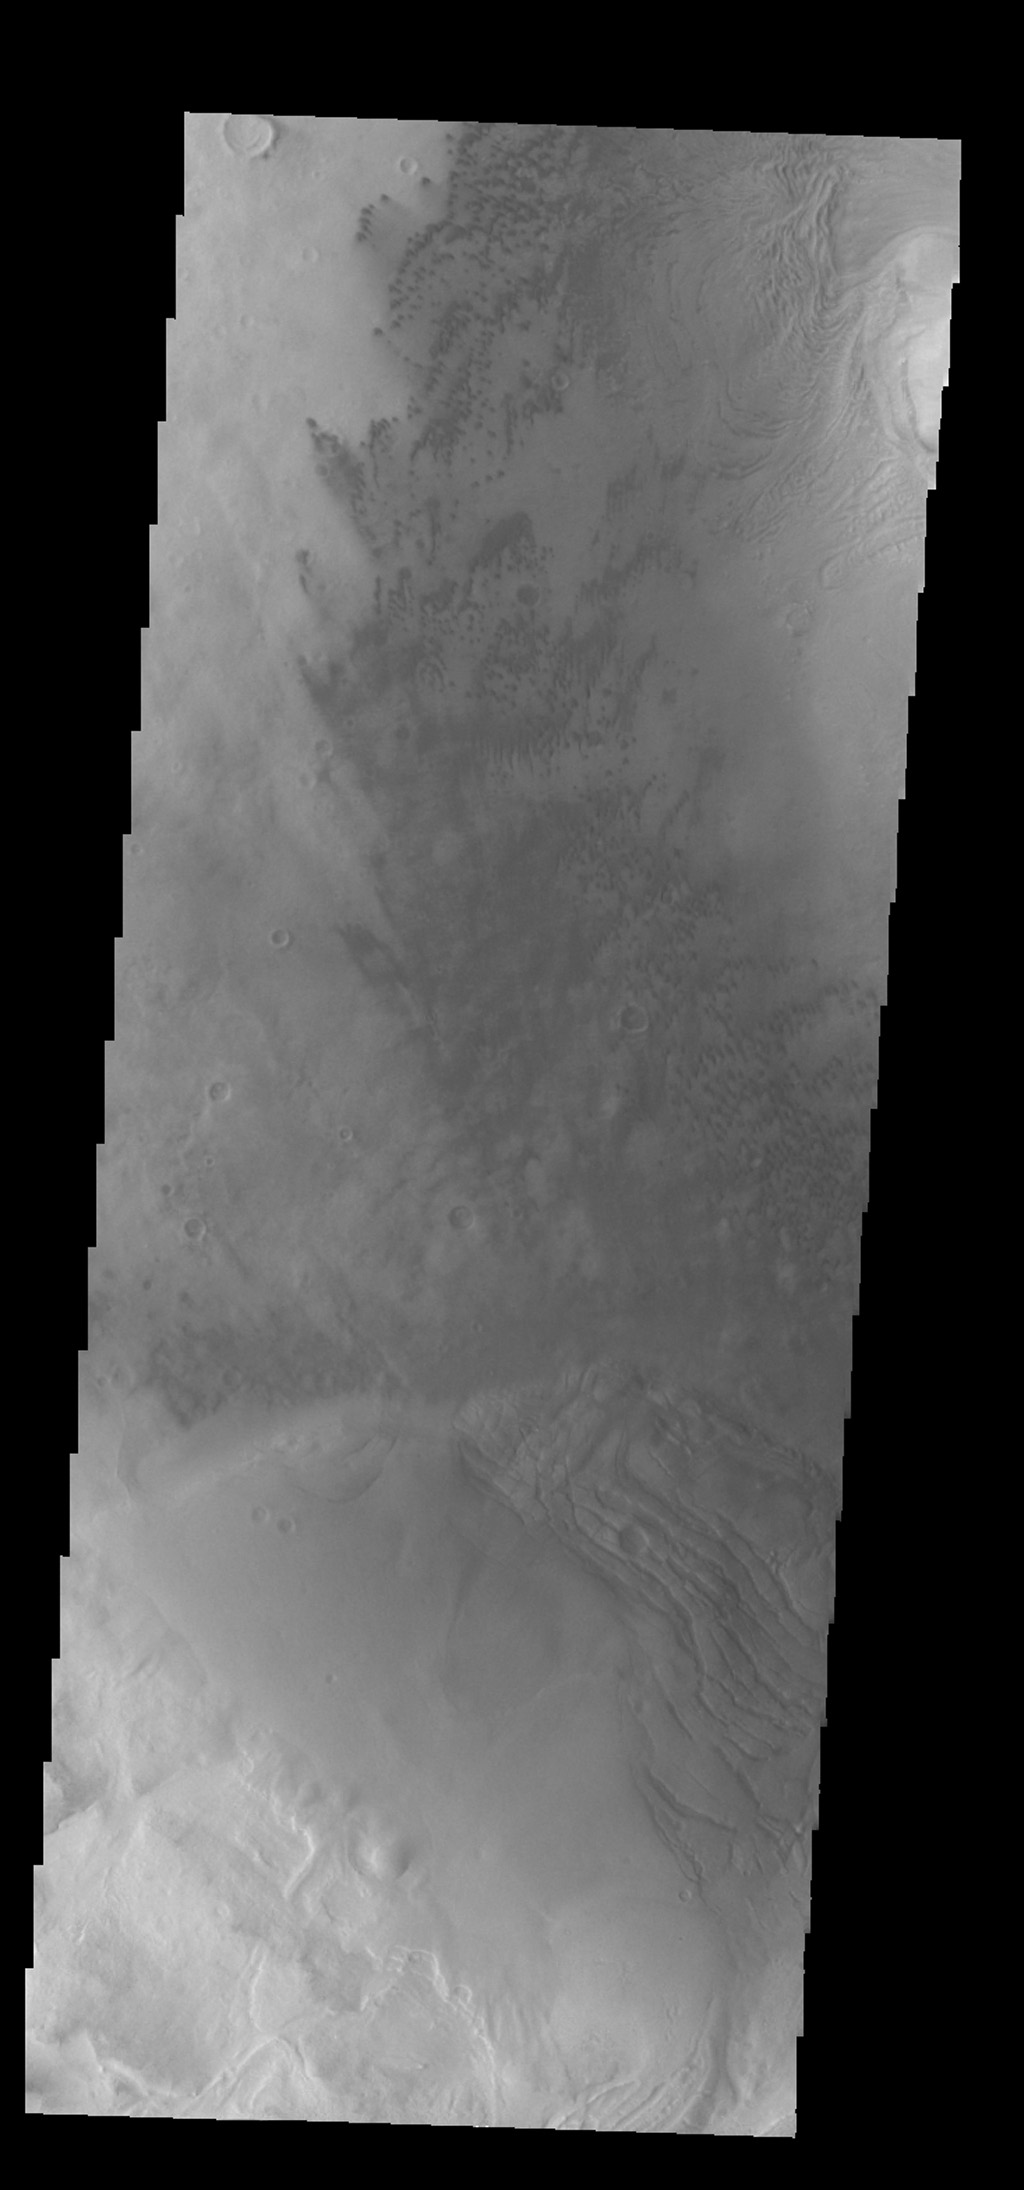 The small, dark dunes in this image captured by NASA's 2001 Mars Odyssey spacecraft are located on the floor of Moreux Crater.